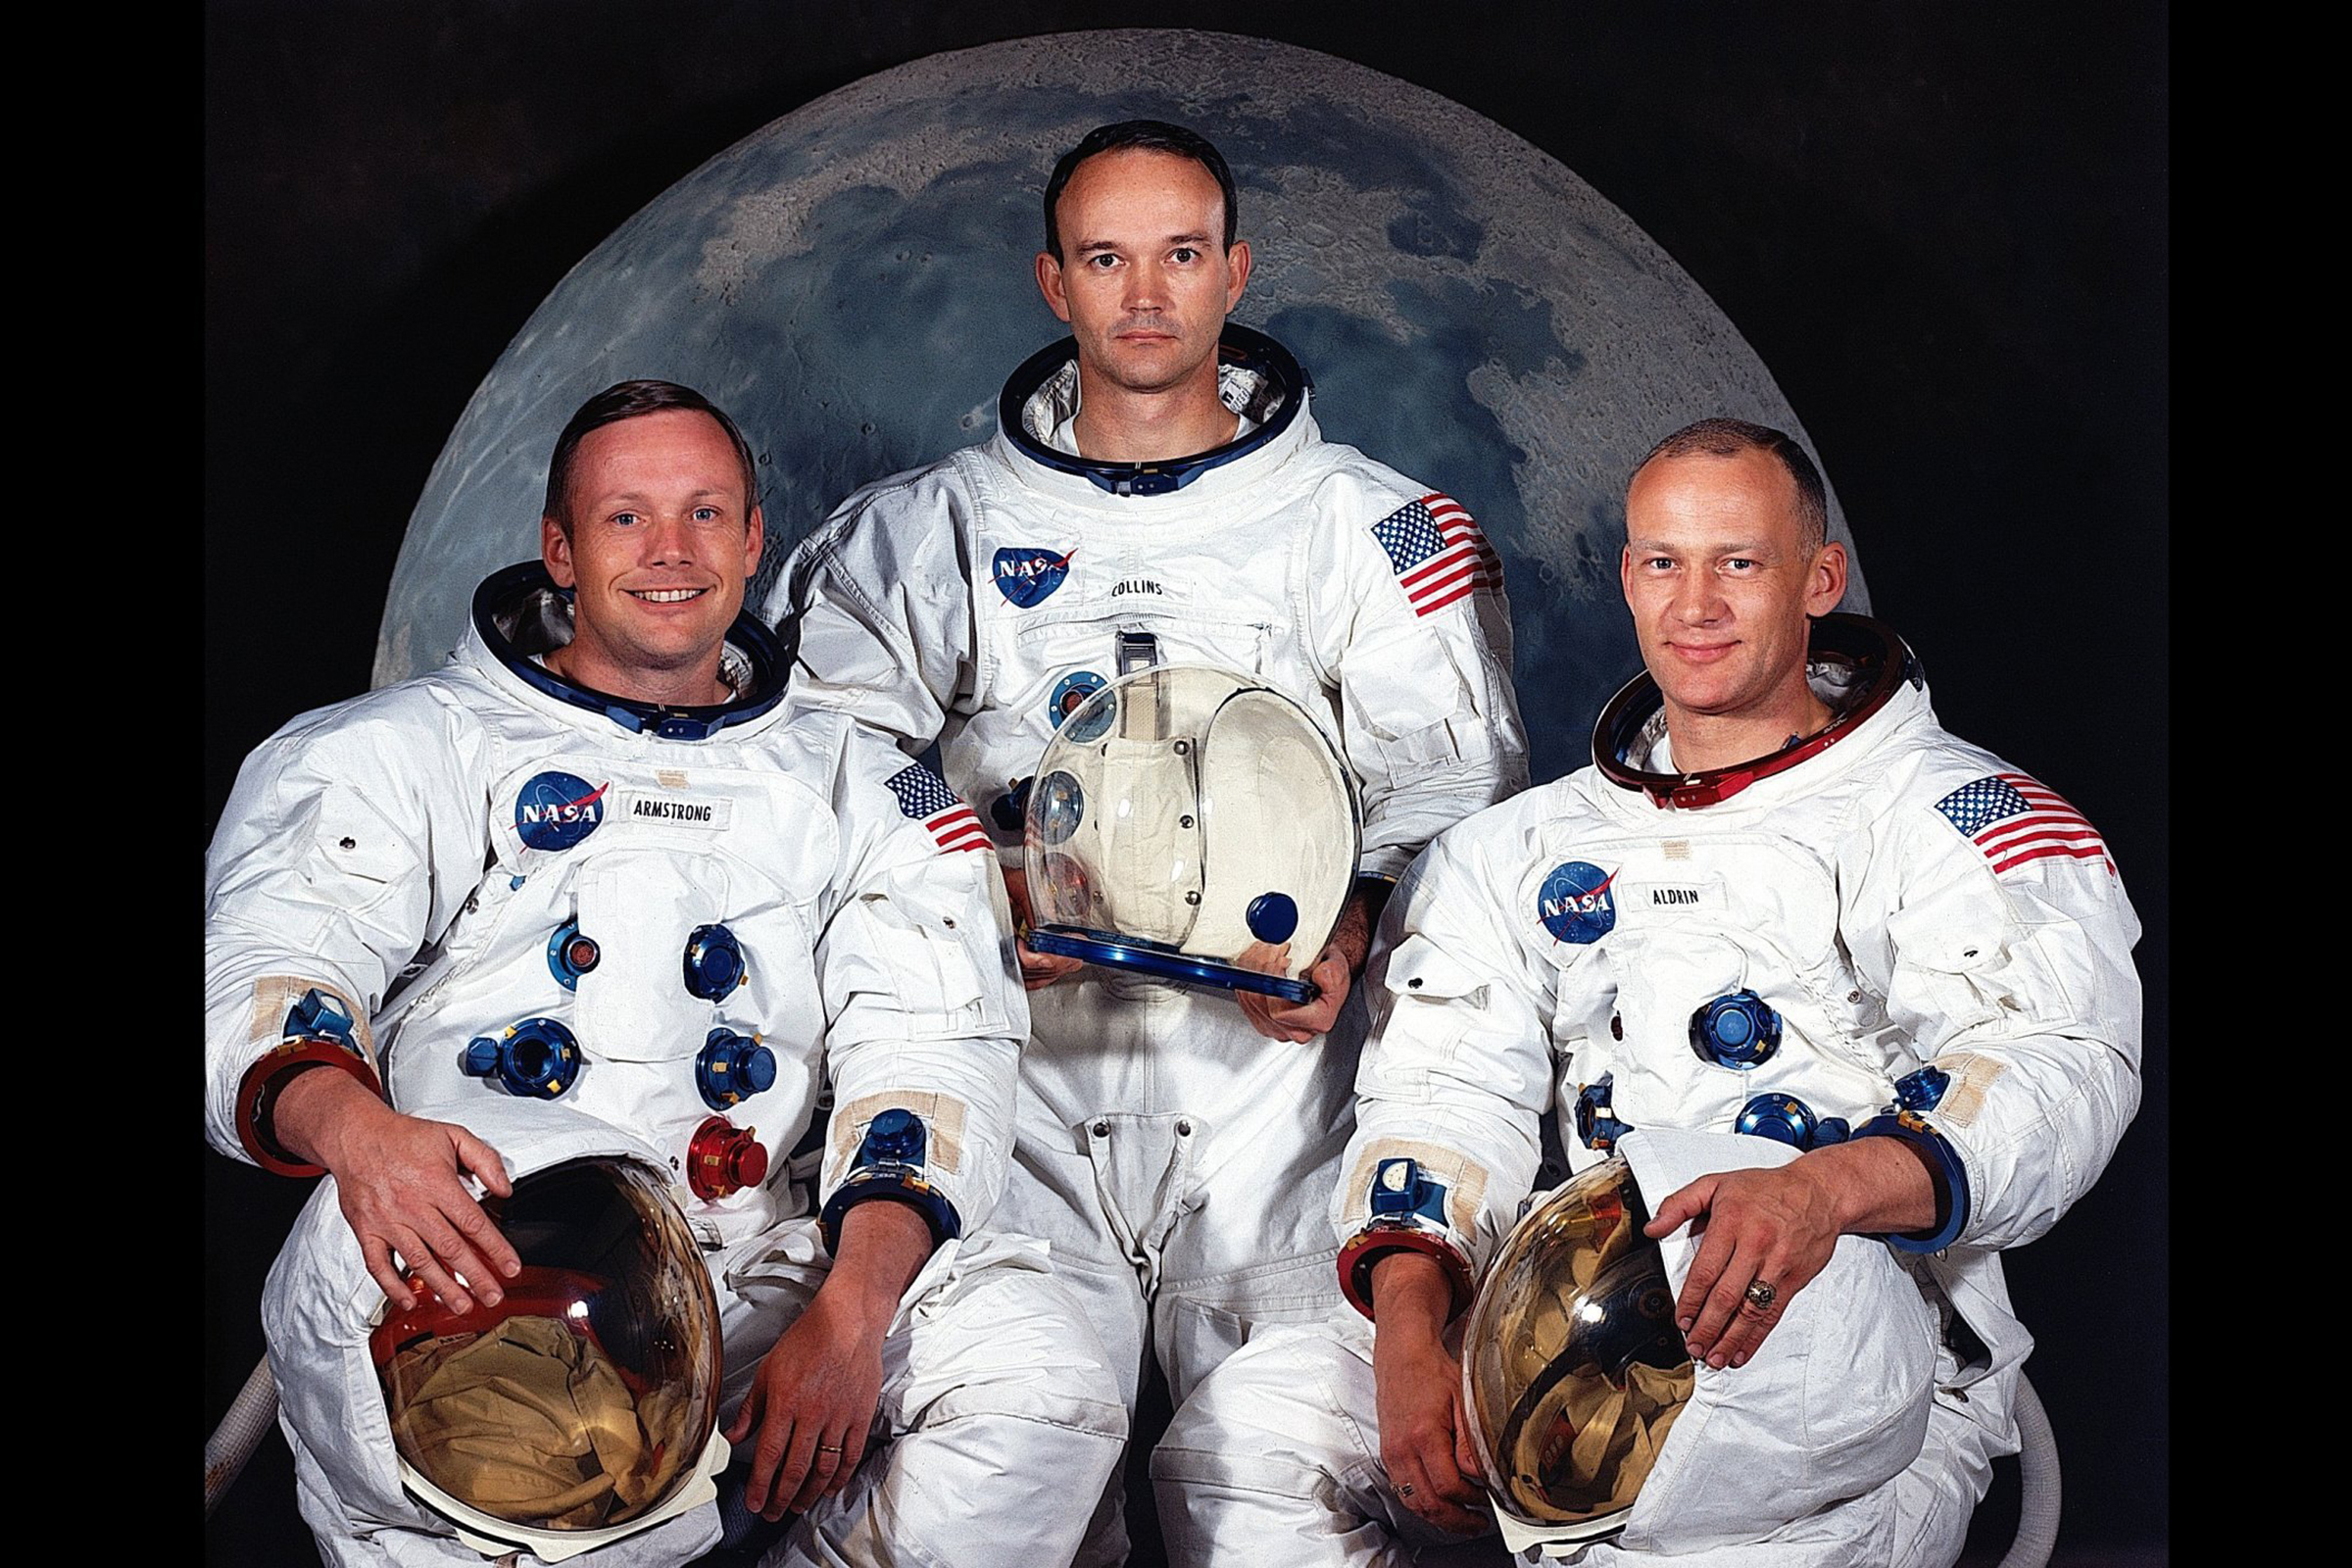 The Apollo 11 crew; Neil Armstrong (l), Michael Collins (c) and Edwin 'Buzz' Aldrin (r).